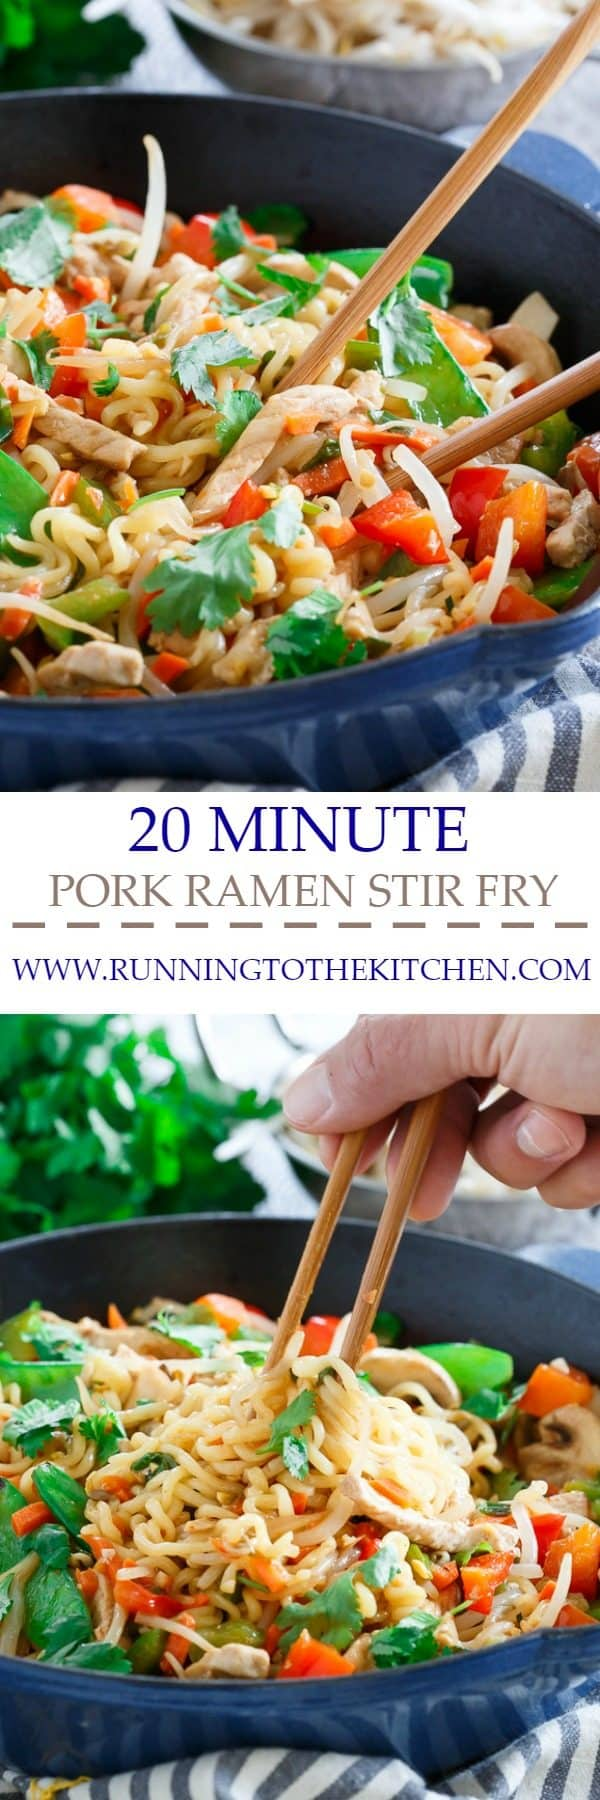 This 20 minute pork ramen stir fry is sweet, spicy and filled with vegetables for a healthy weeknight dinner.